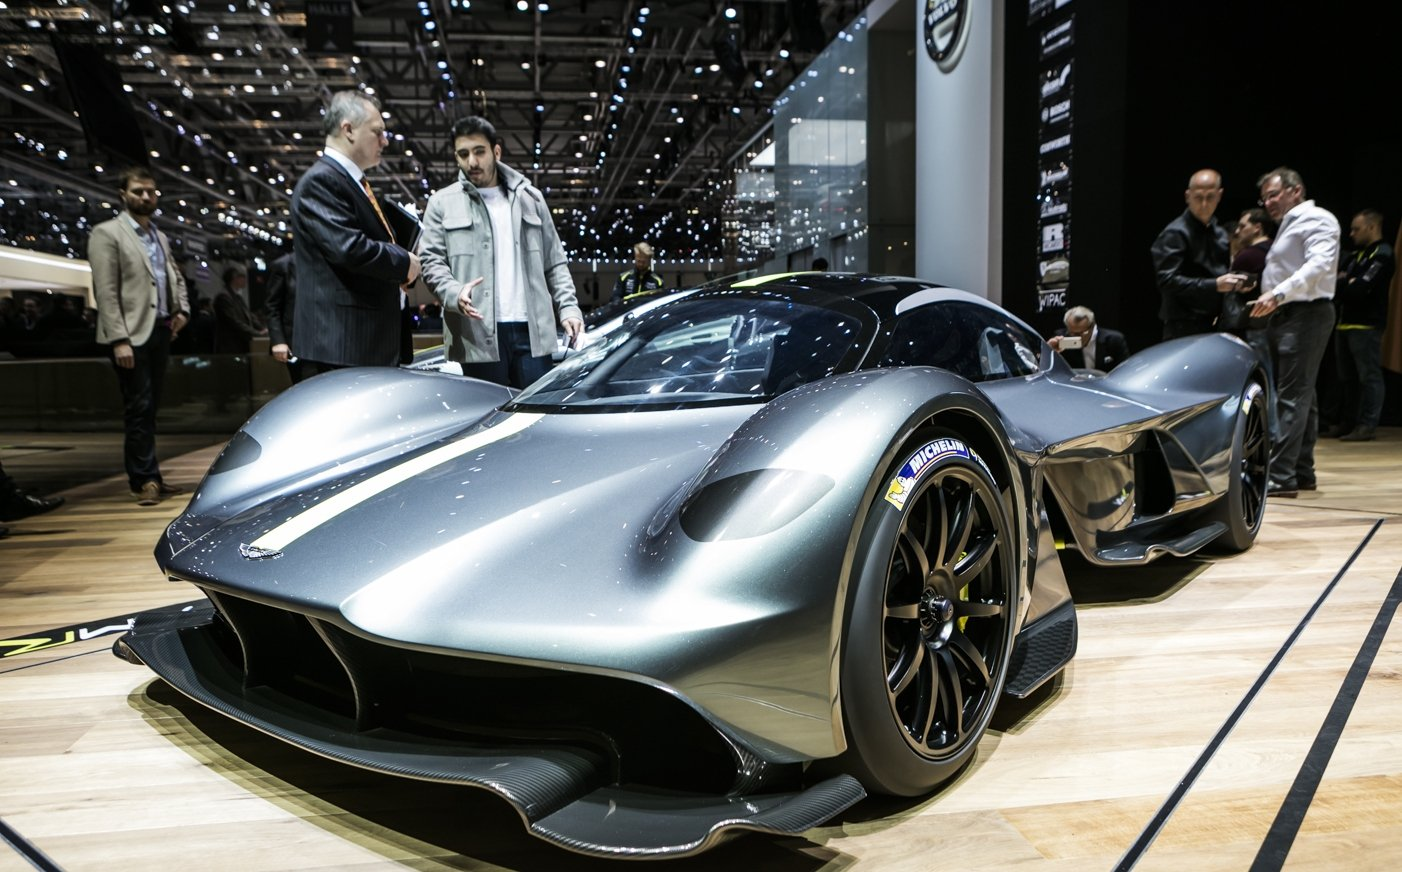 Most Expensive Car In The World >> Aston Martin Valkyrie - 7 interesting facts on the mental hypercar